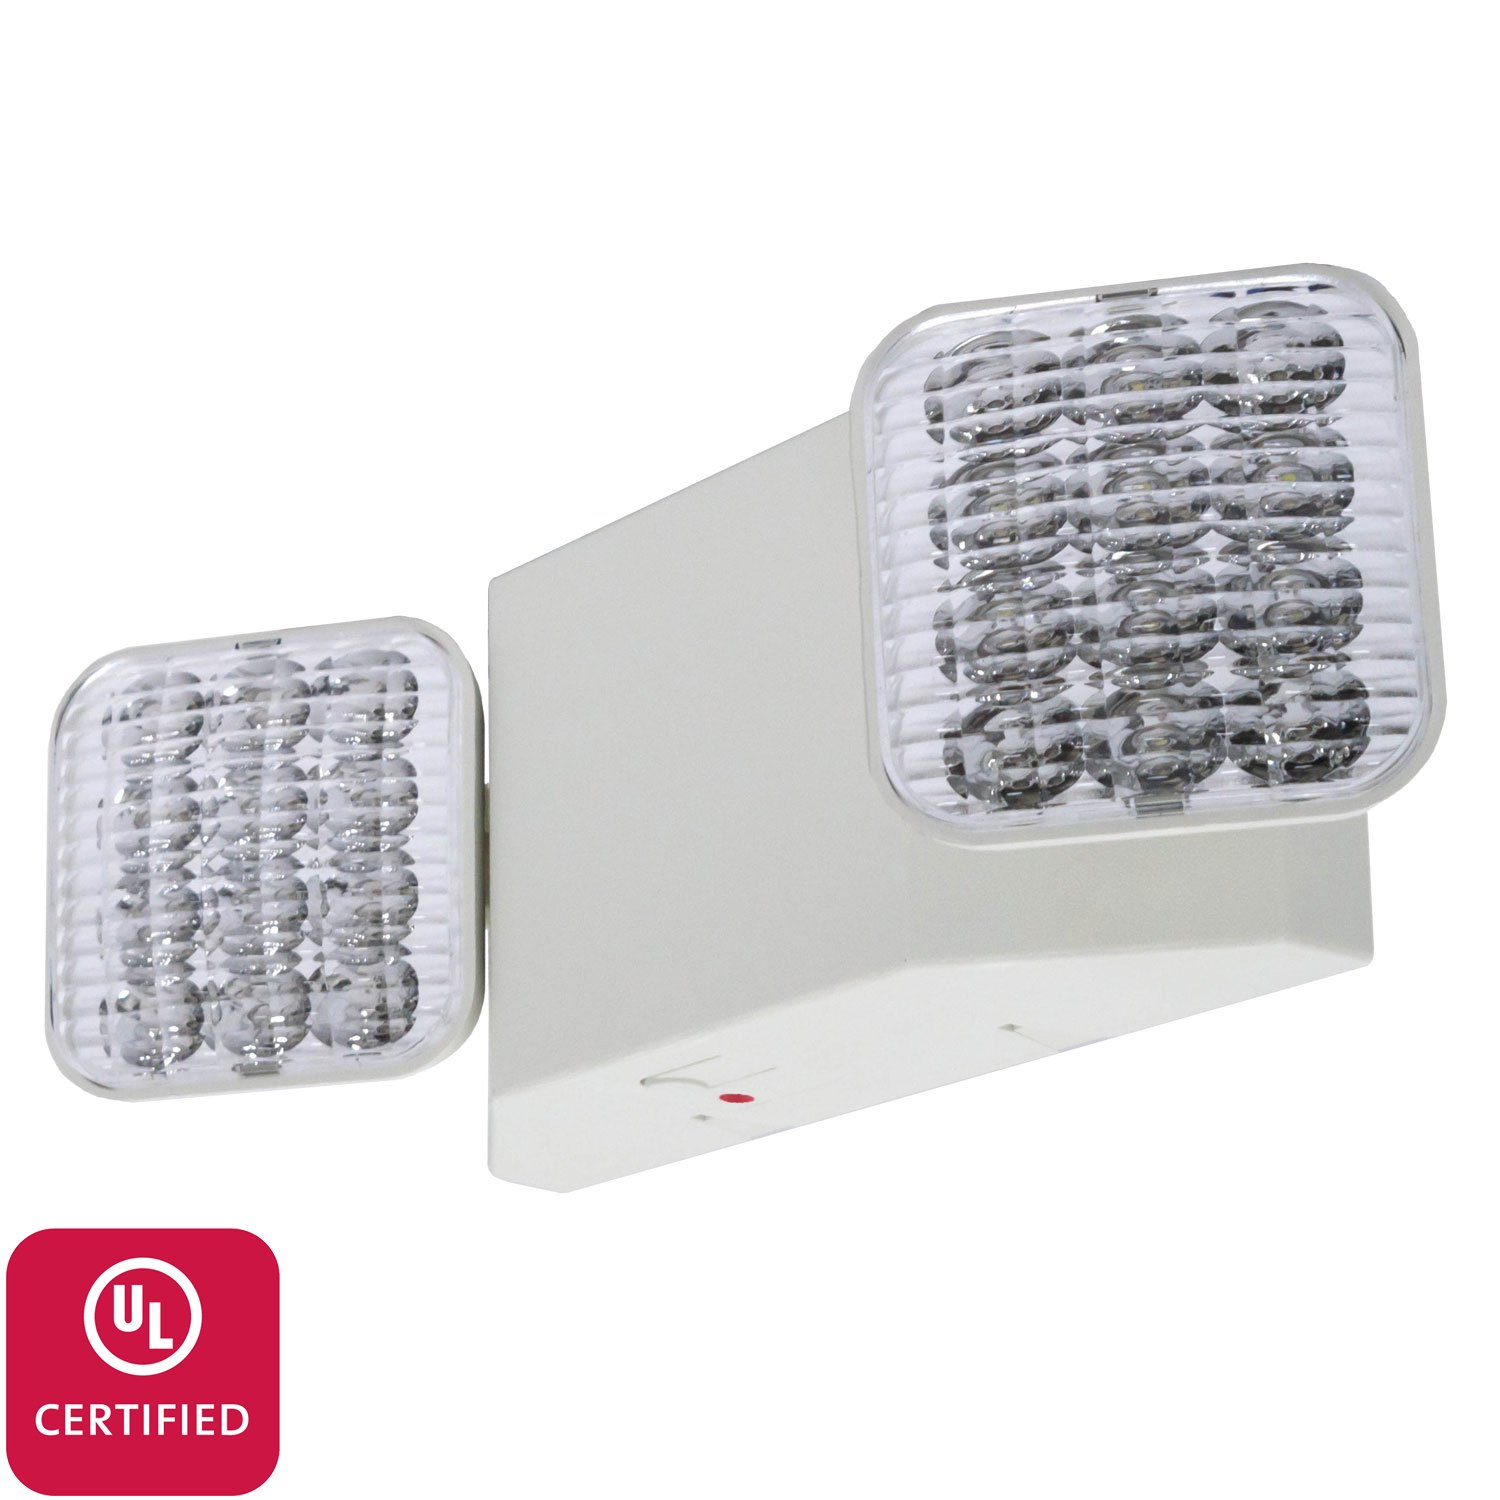 Lfi lights ul certified hardwired led standard emergency light lfi lights ul certified hardwired led standard emergency light square head elw2 commercial emergency light fixtures amazon aloadofball Gallery